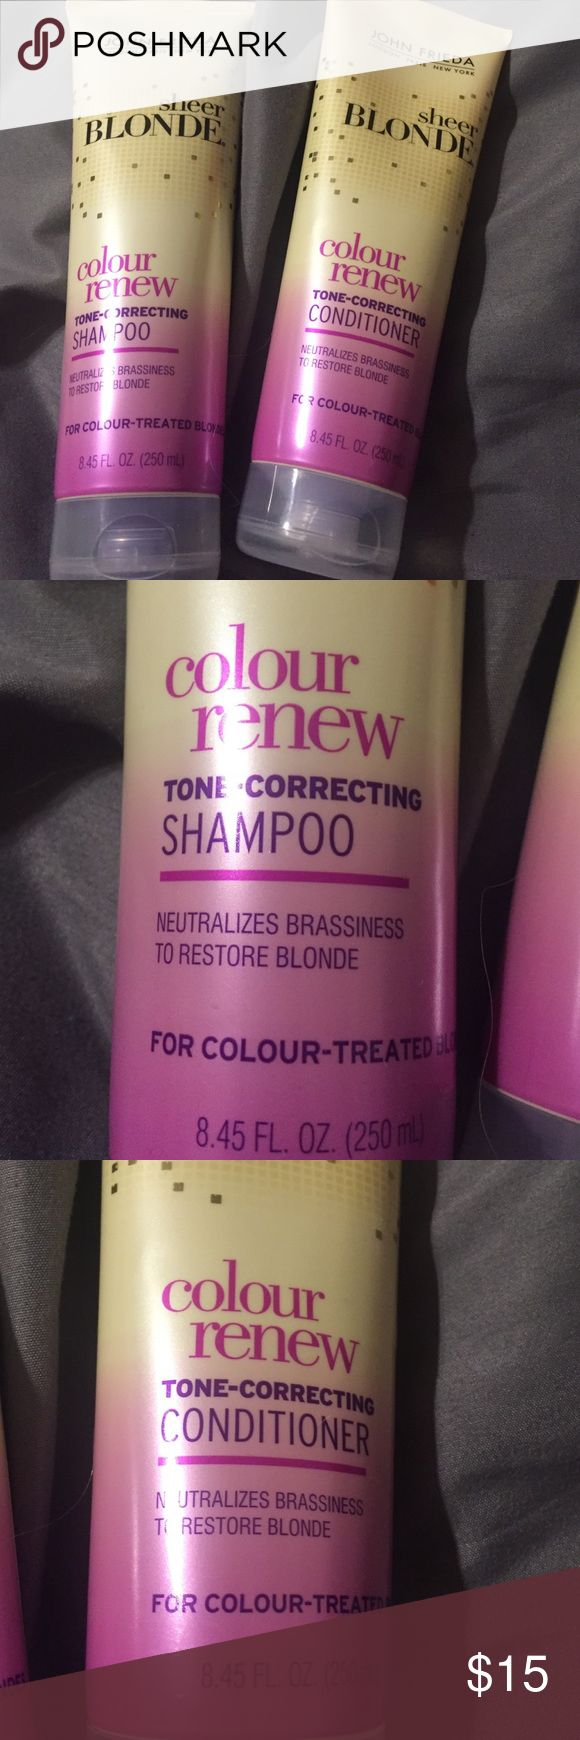 Sheer blonde Shampoo and conditioner colour renew tone correcting shampoo and conditioner. These are purple in color and are meant to tone out brassy tones from blonde hair. Full sized only used once John Frieda Other